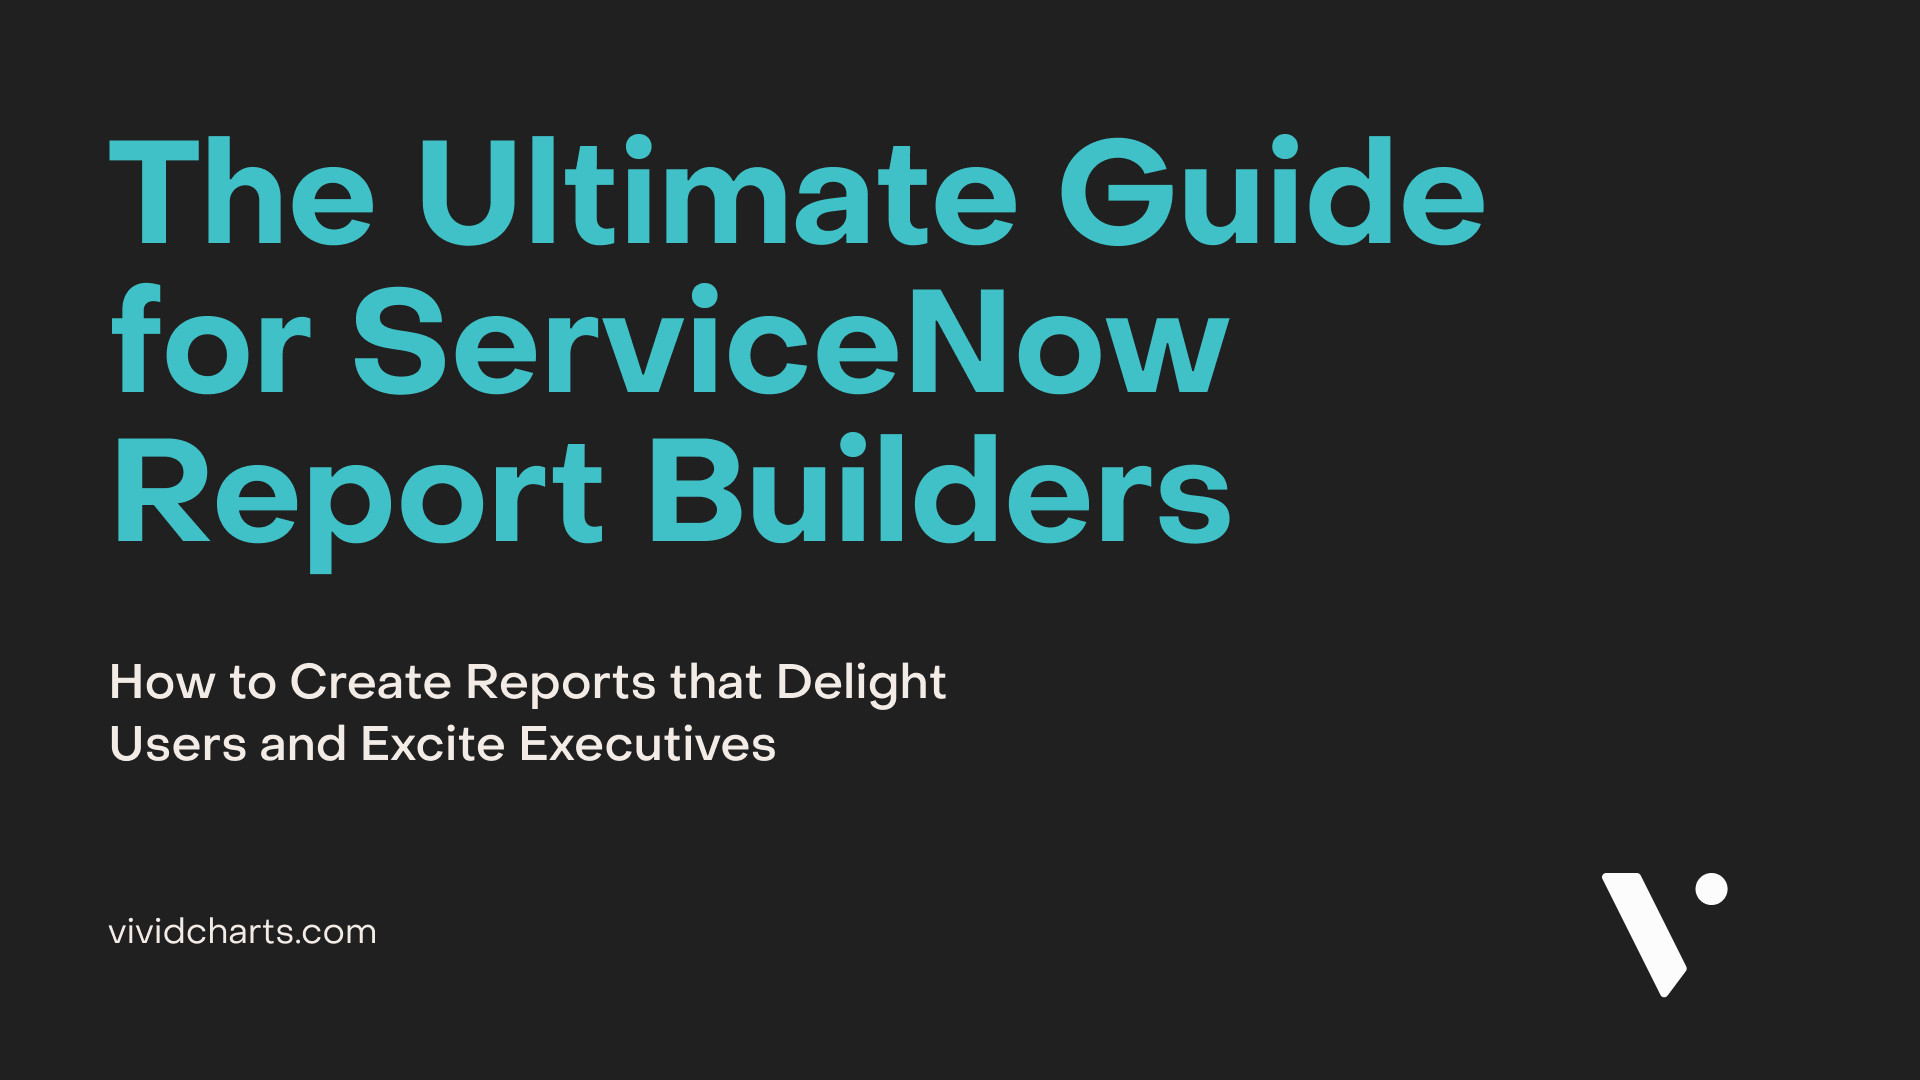 Overviews and Guides for VividCharts plus ServiceNow